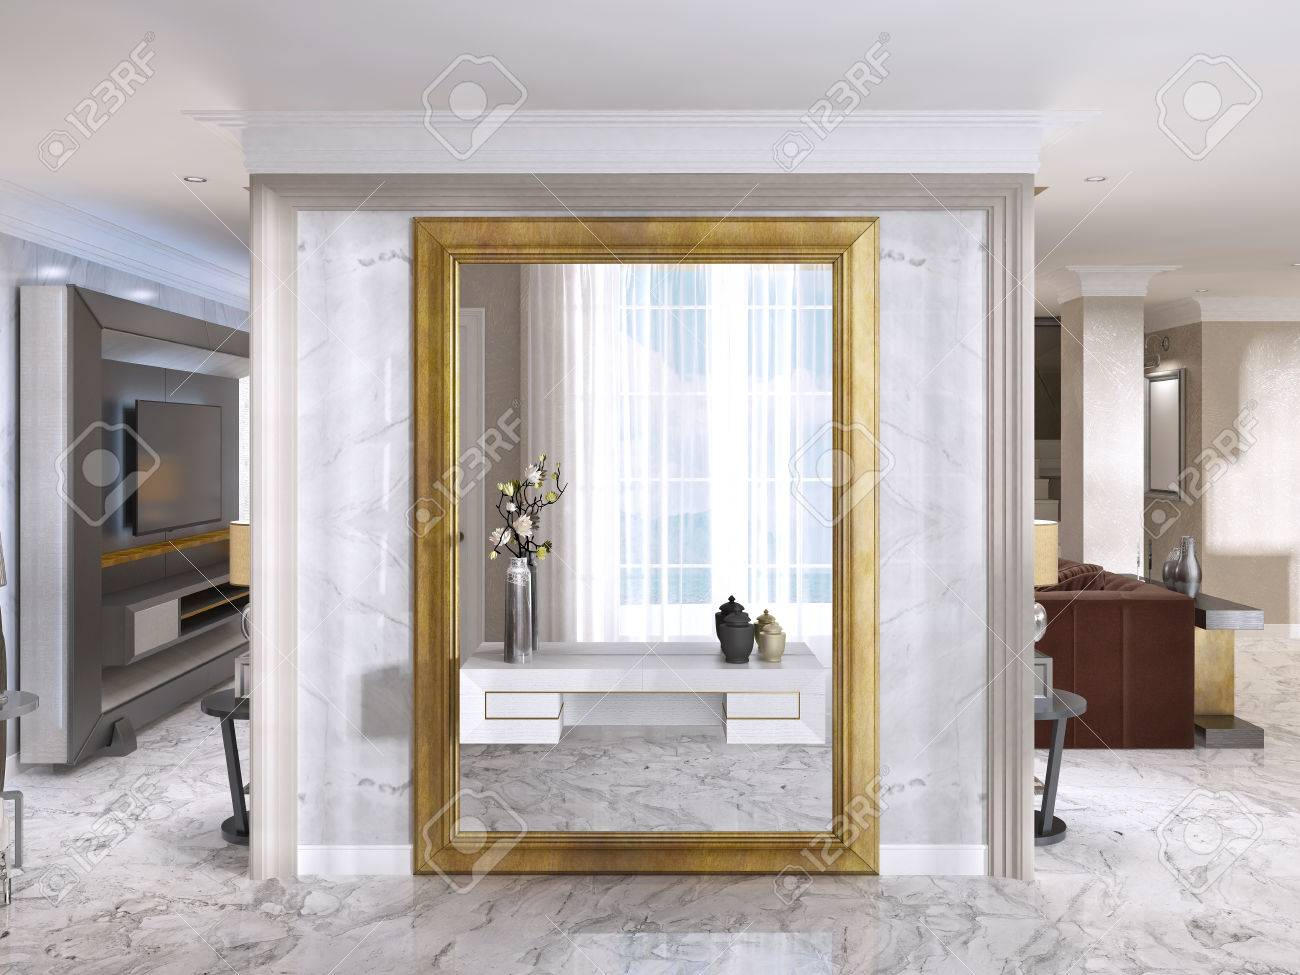 e333ec604032 Luxurious Art-Deco entrance hall with a large designer mirror in gold frame  and built